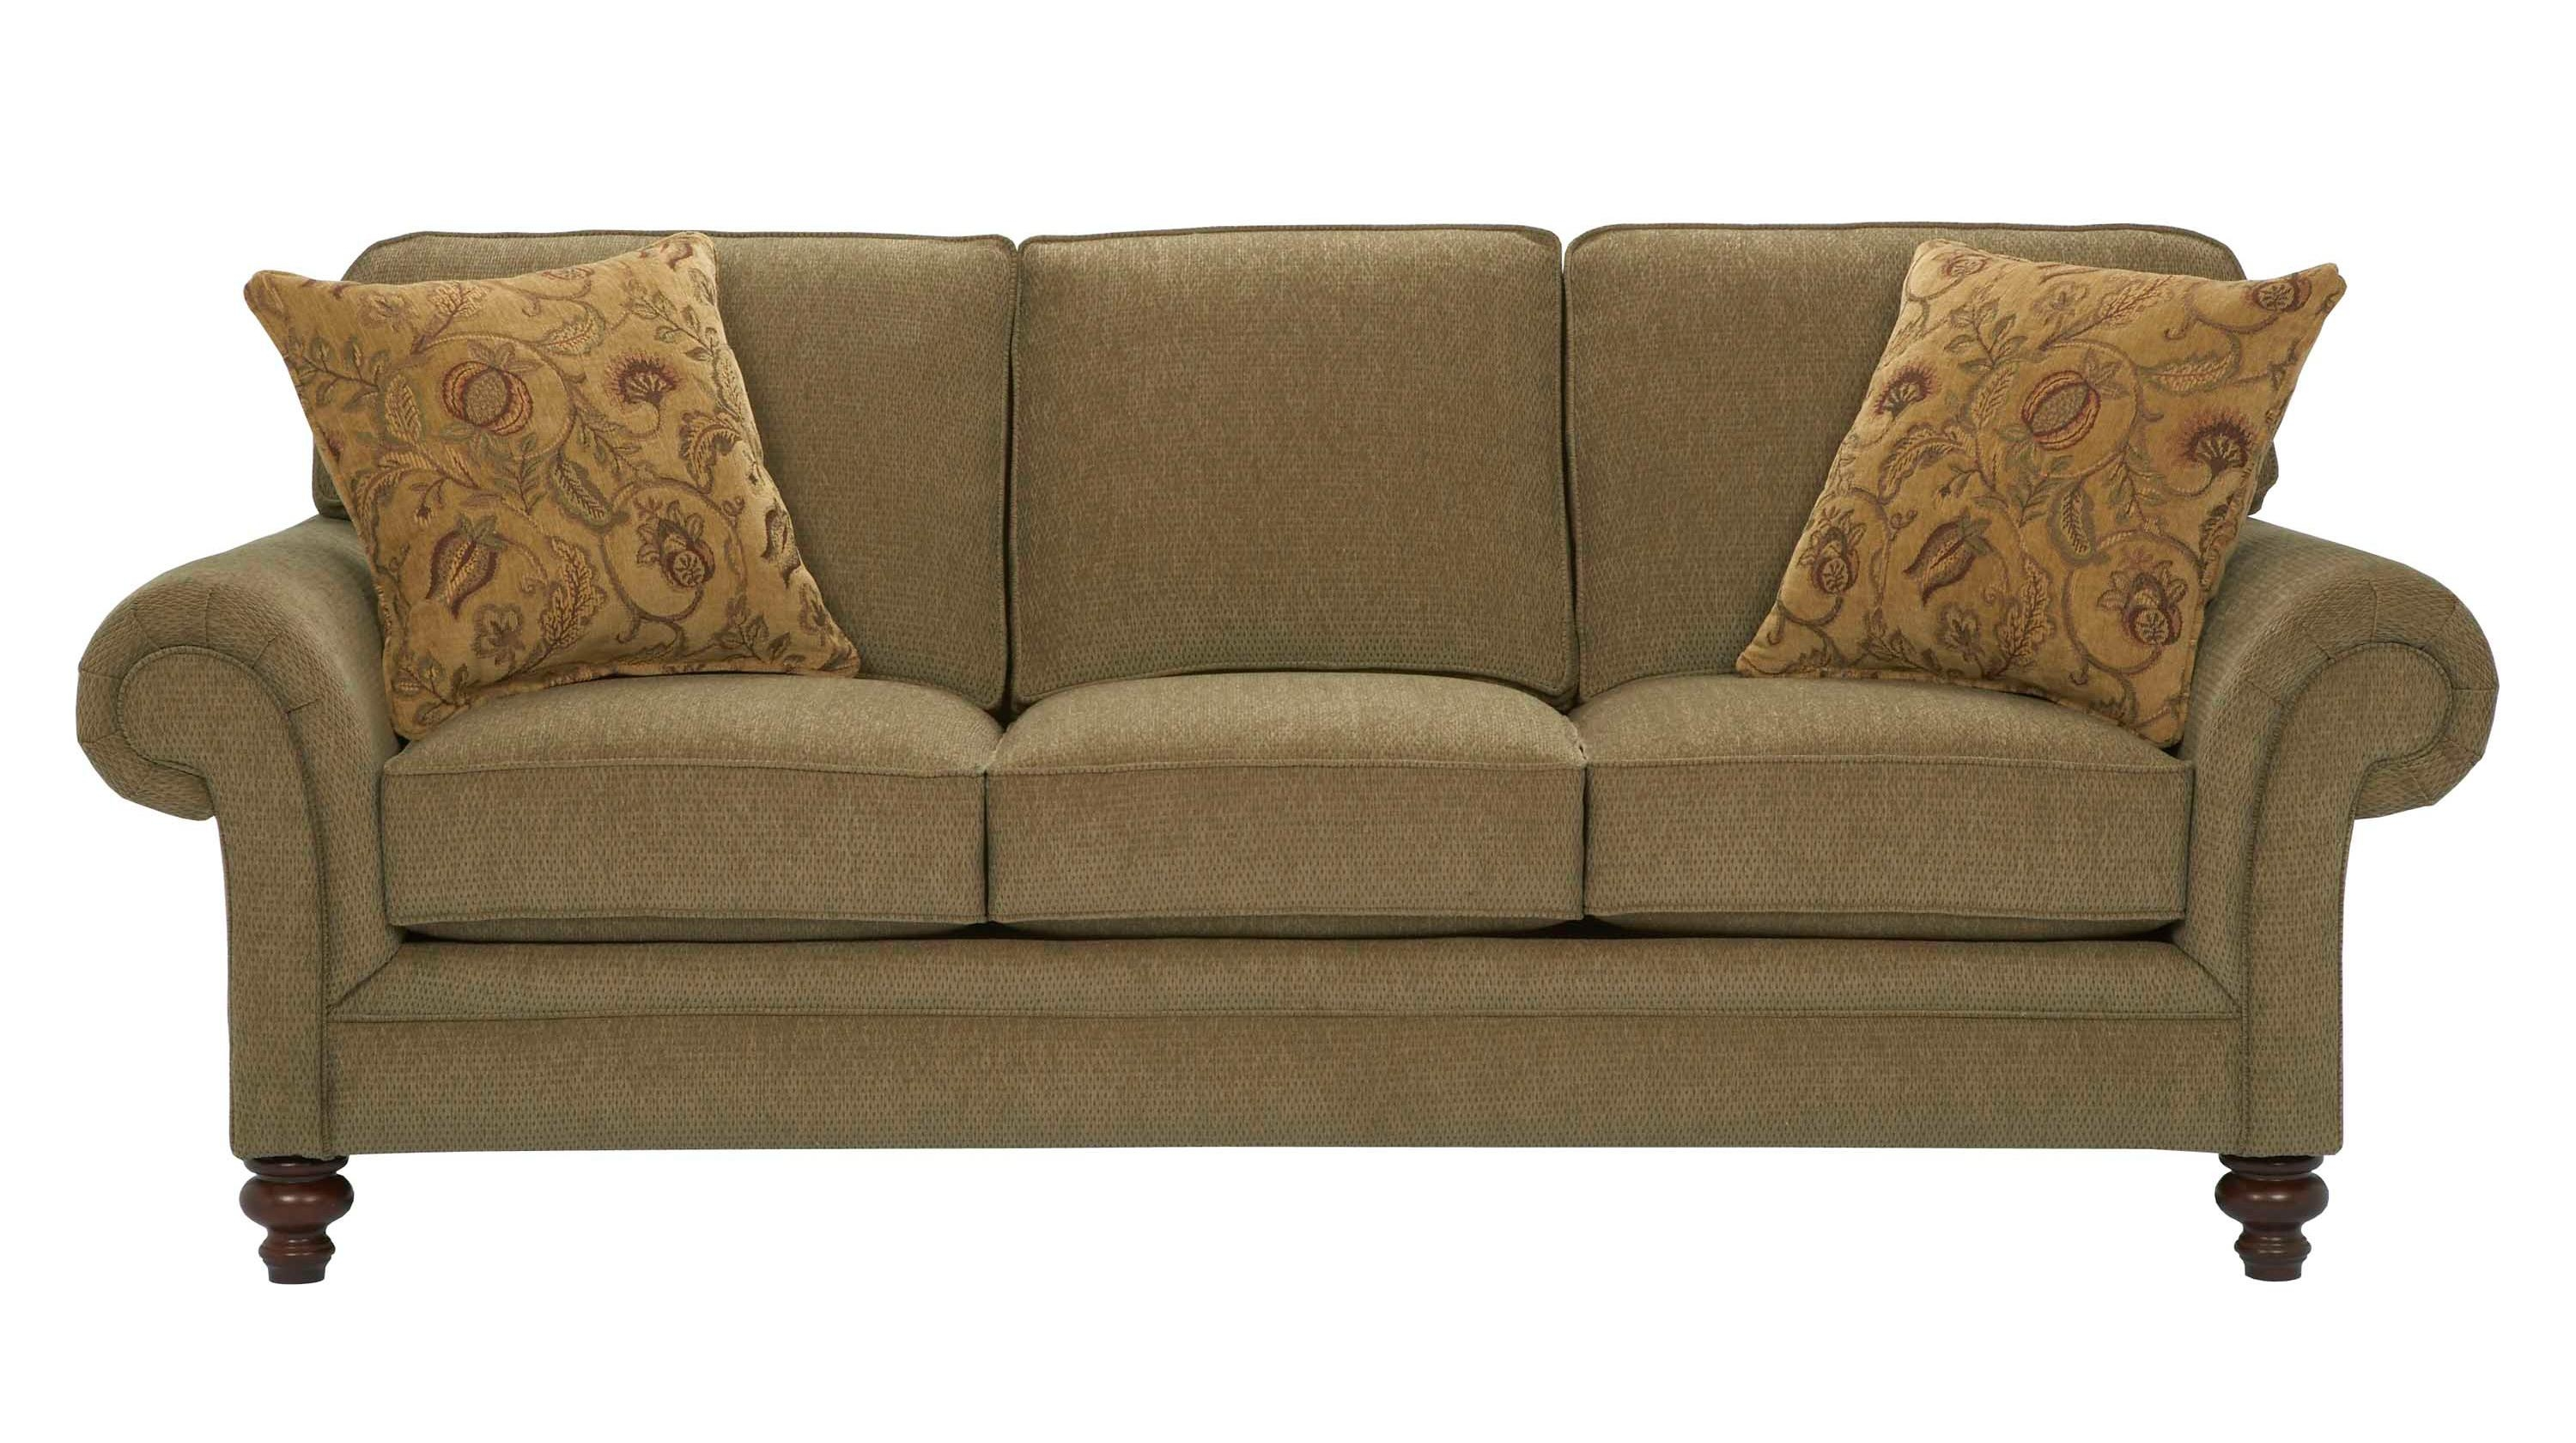 50 Broyhill Sectional Sofa, Broyhill Furniture Audrey Sofa 37623 With Regard To Broyhill Harrison Sofas (Image 1 of 20)